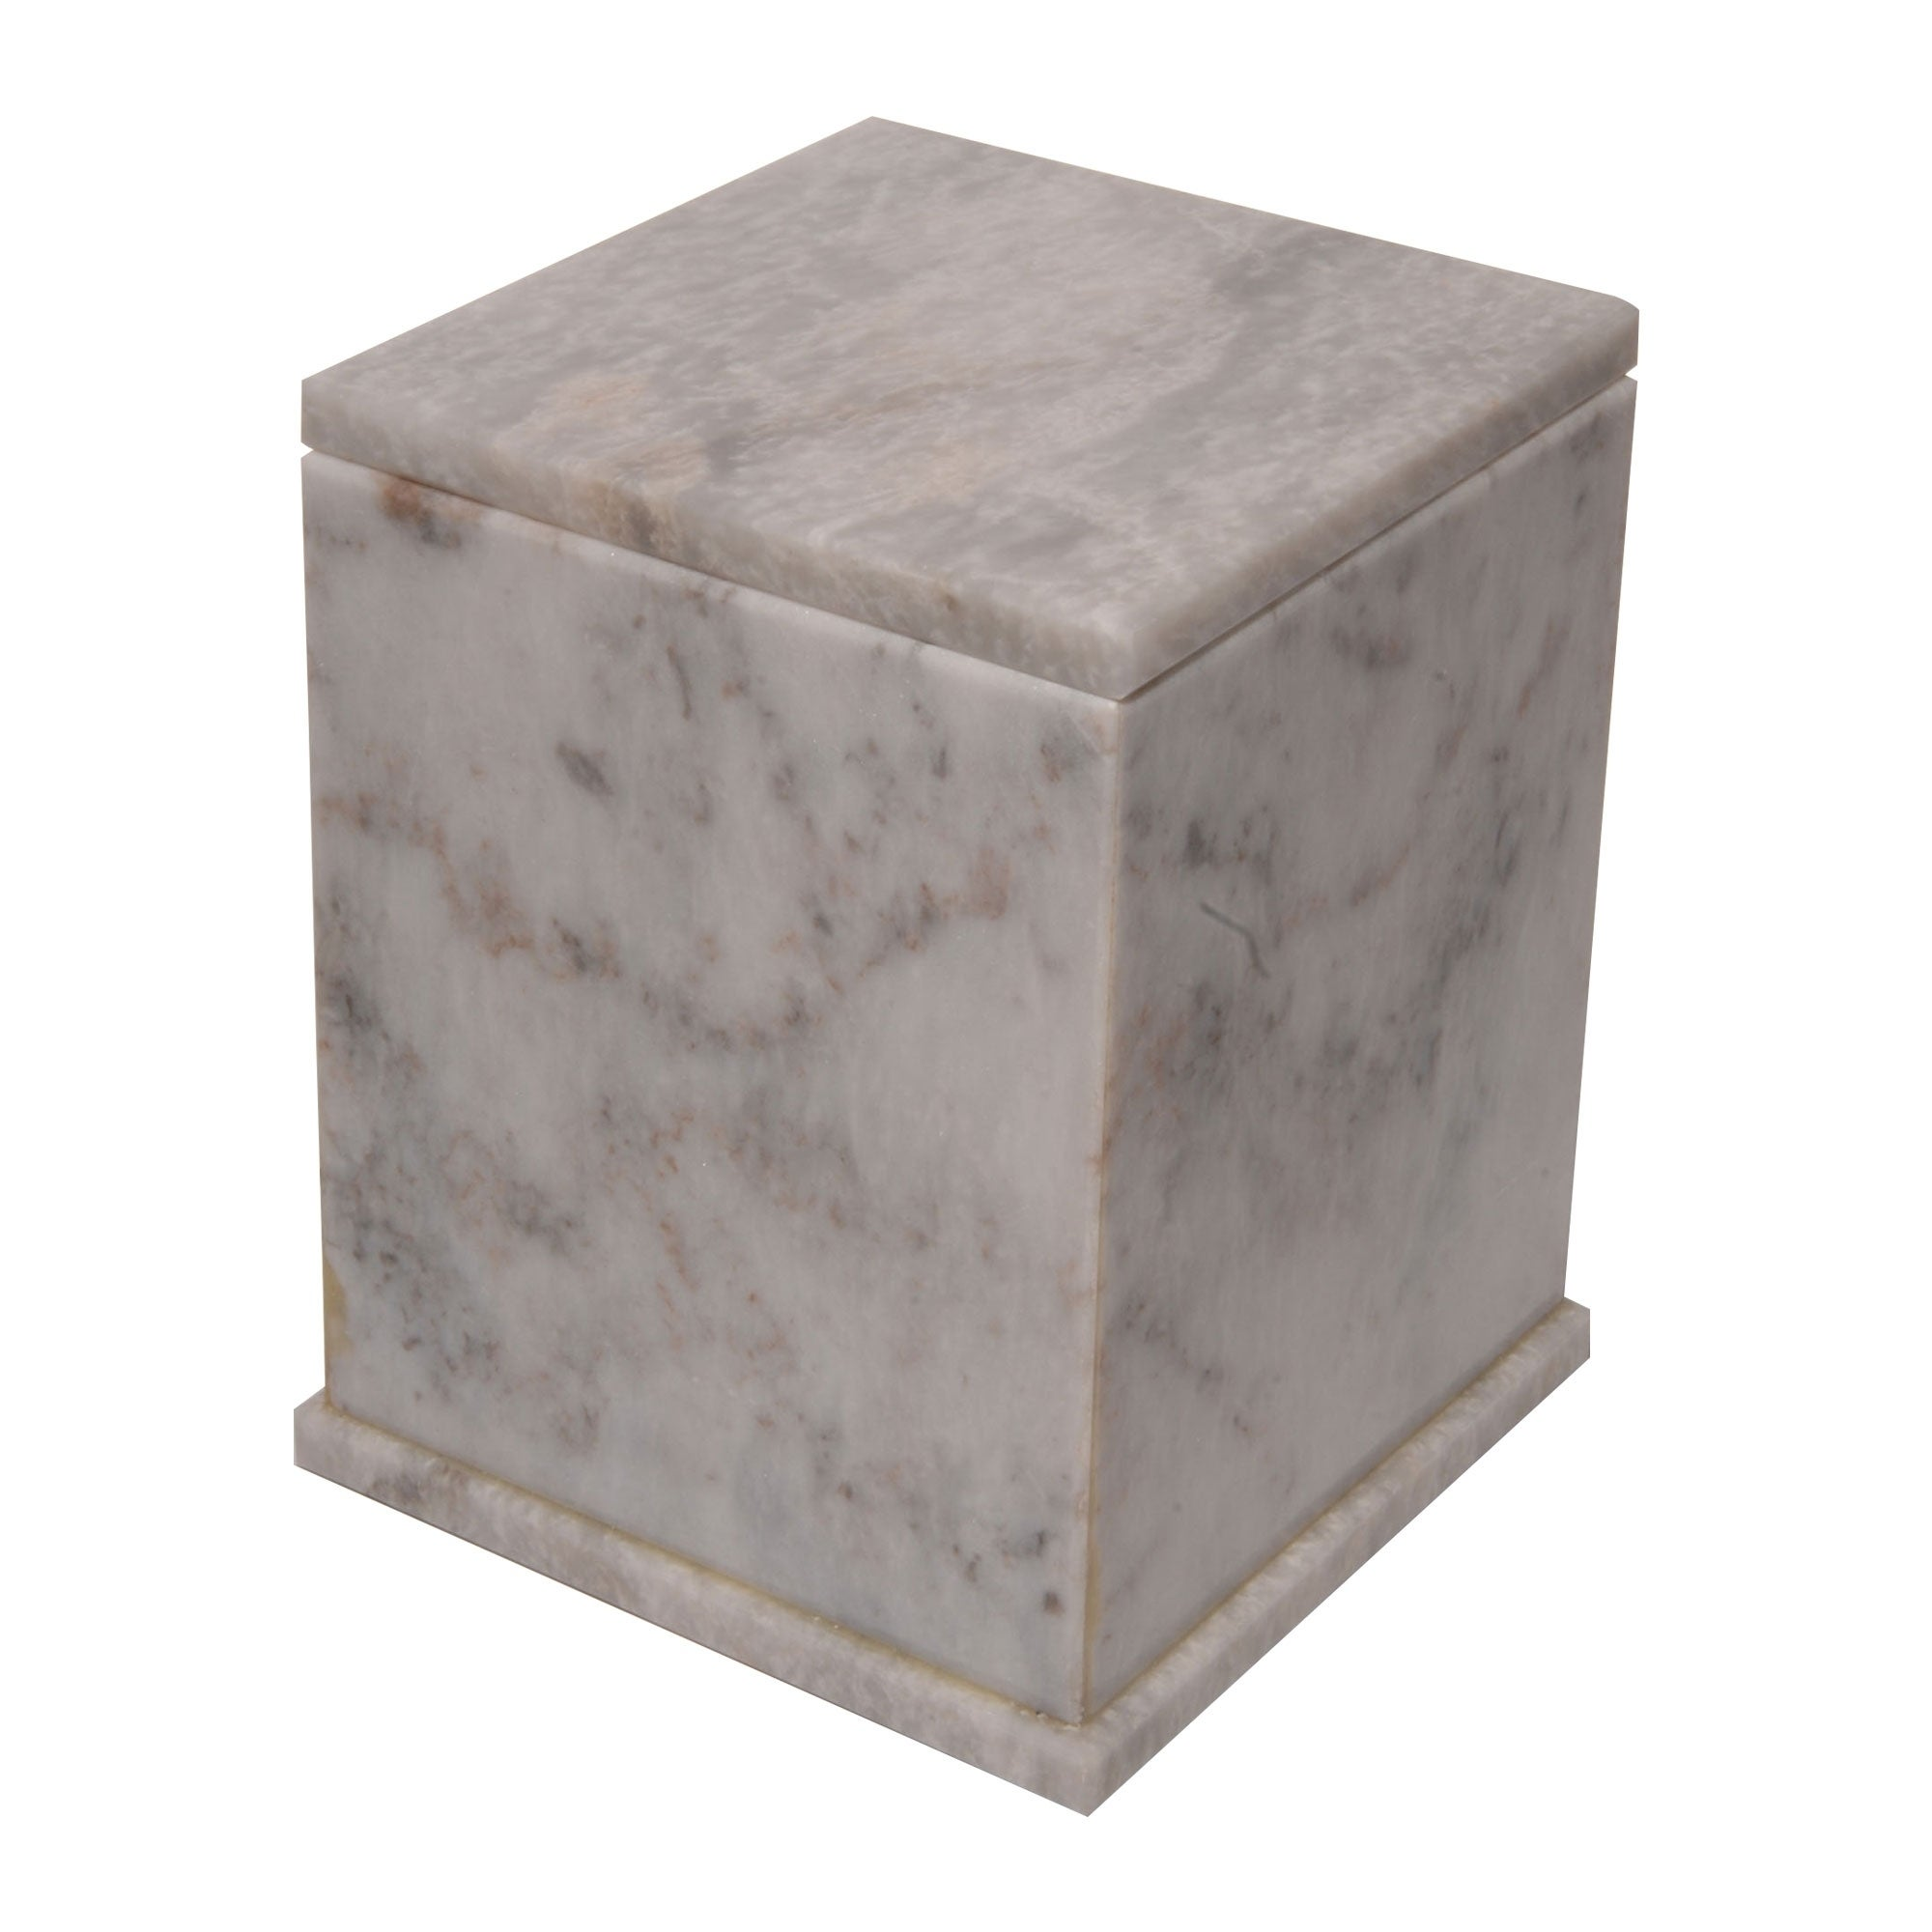 Rembrandt Home Polished Marble Decorative Cremation Urn w...